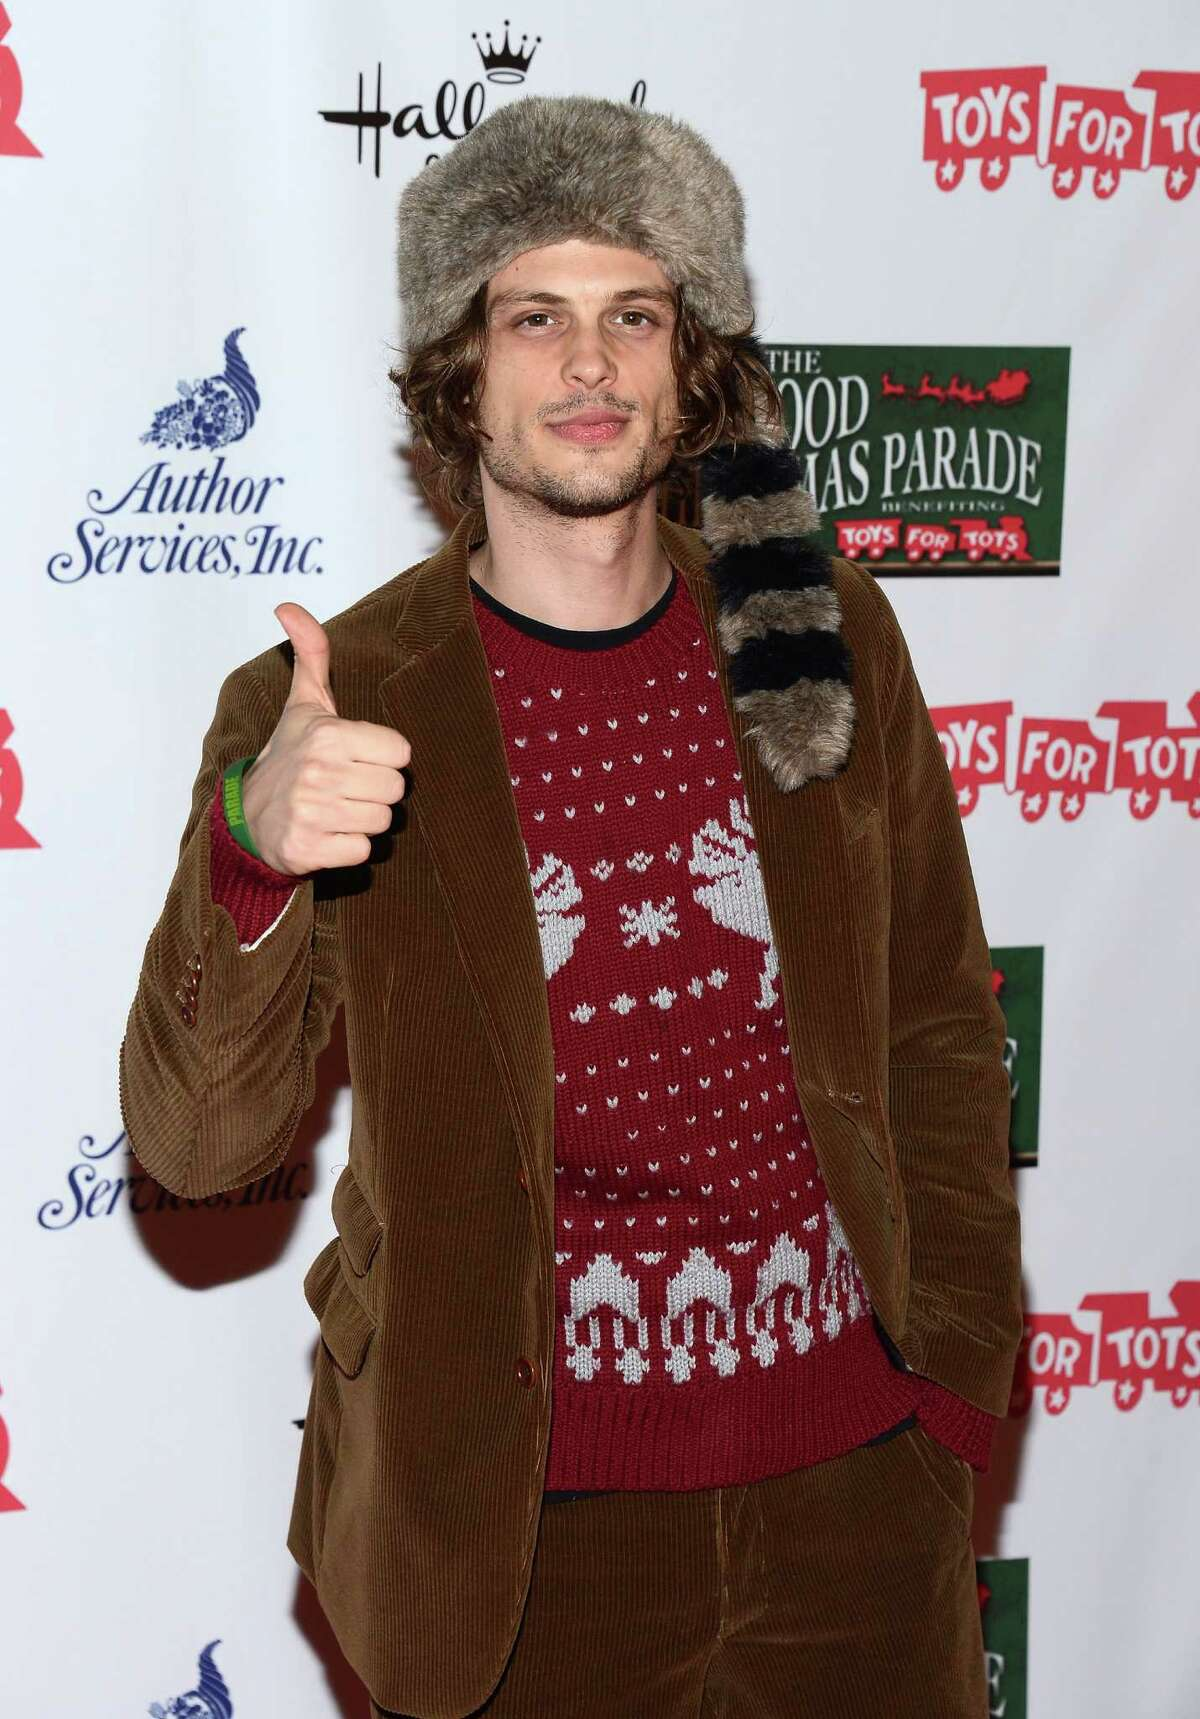 Actor Matthew Gray Gubler was worried his sweater might be too understated. If Davy Crockett lived to see this, well, ... probably a pile of dead hipsters.